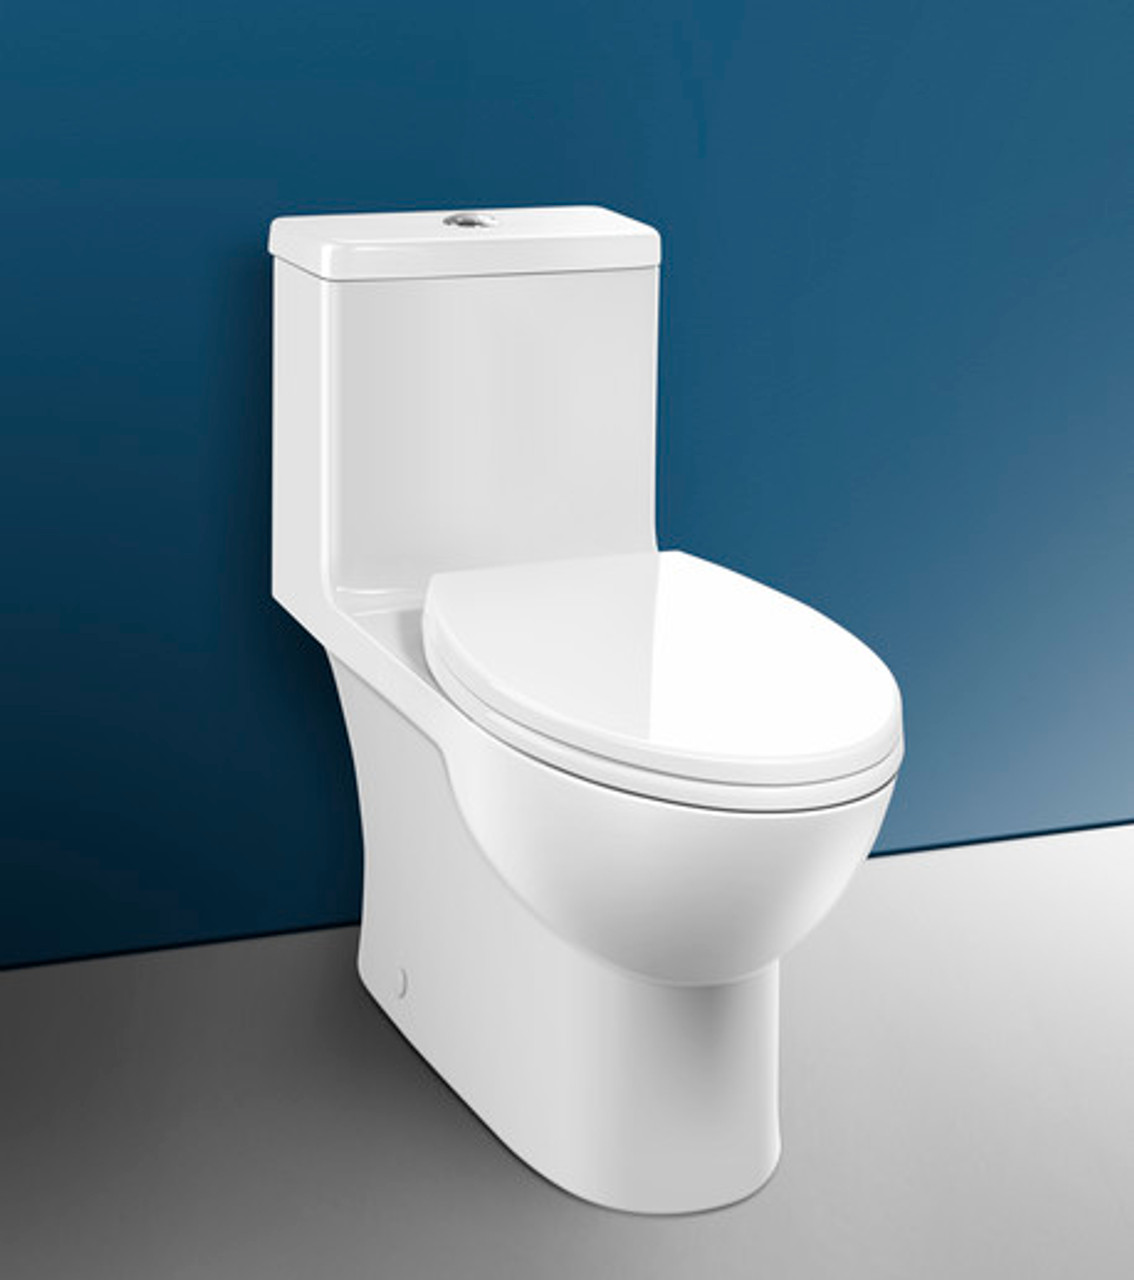 Caroma Caravelle One Piece Comfort Height Toilet White 10